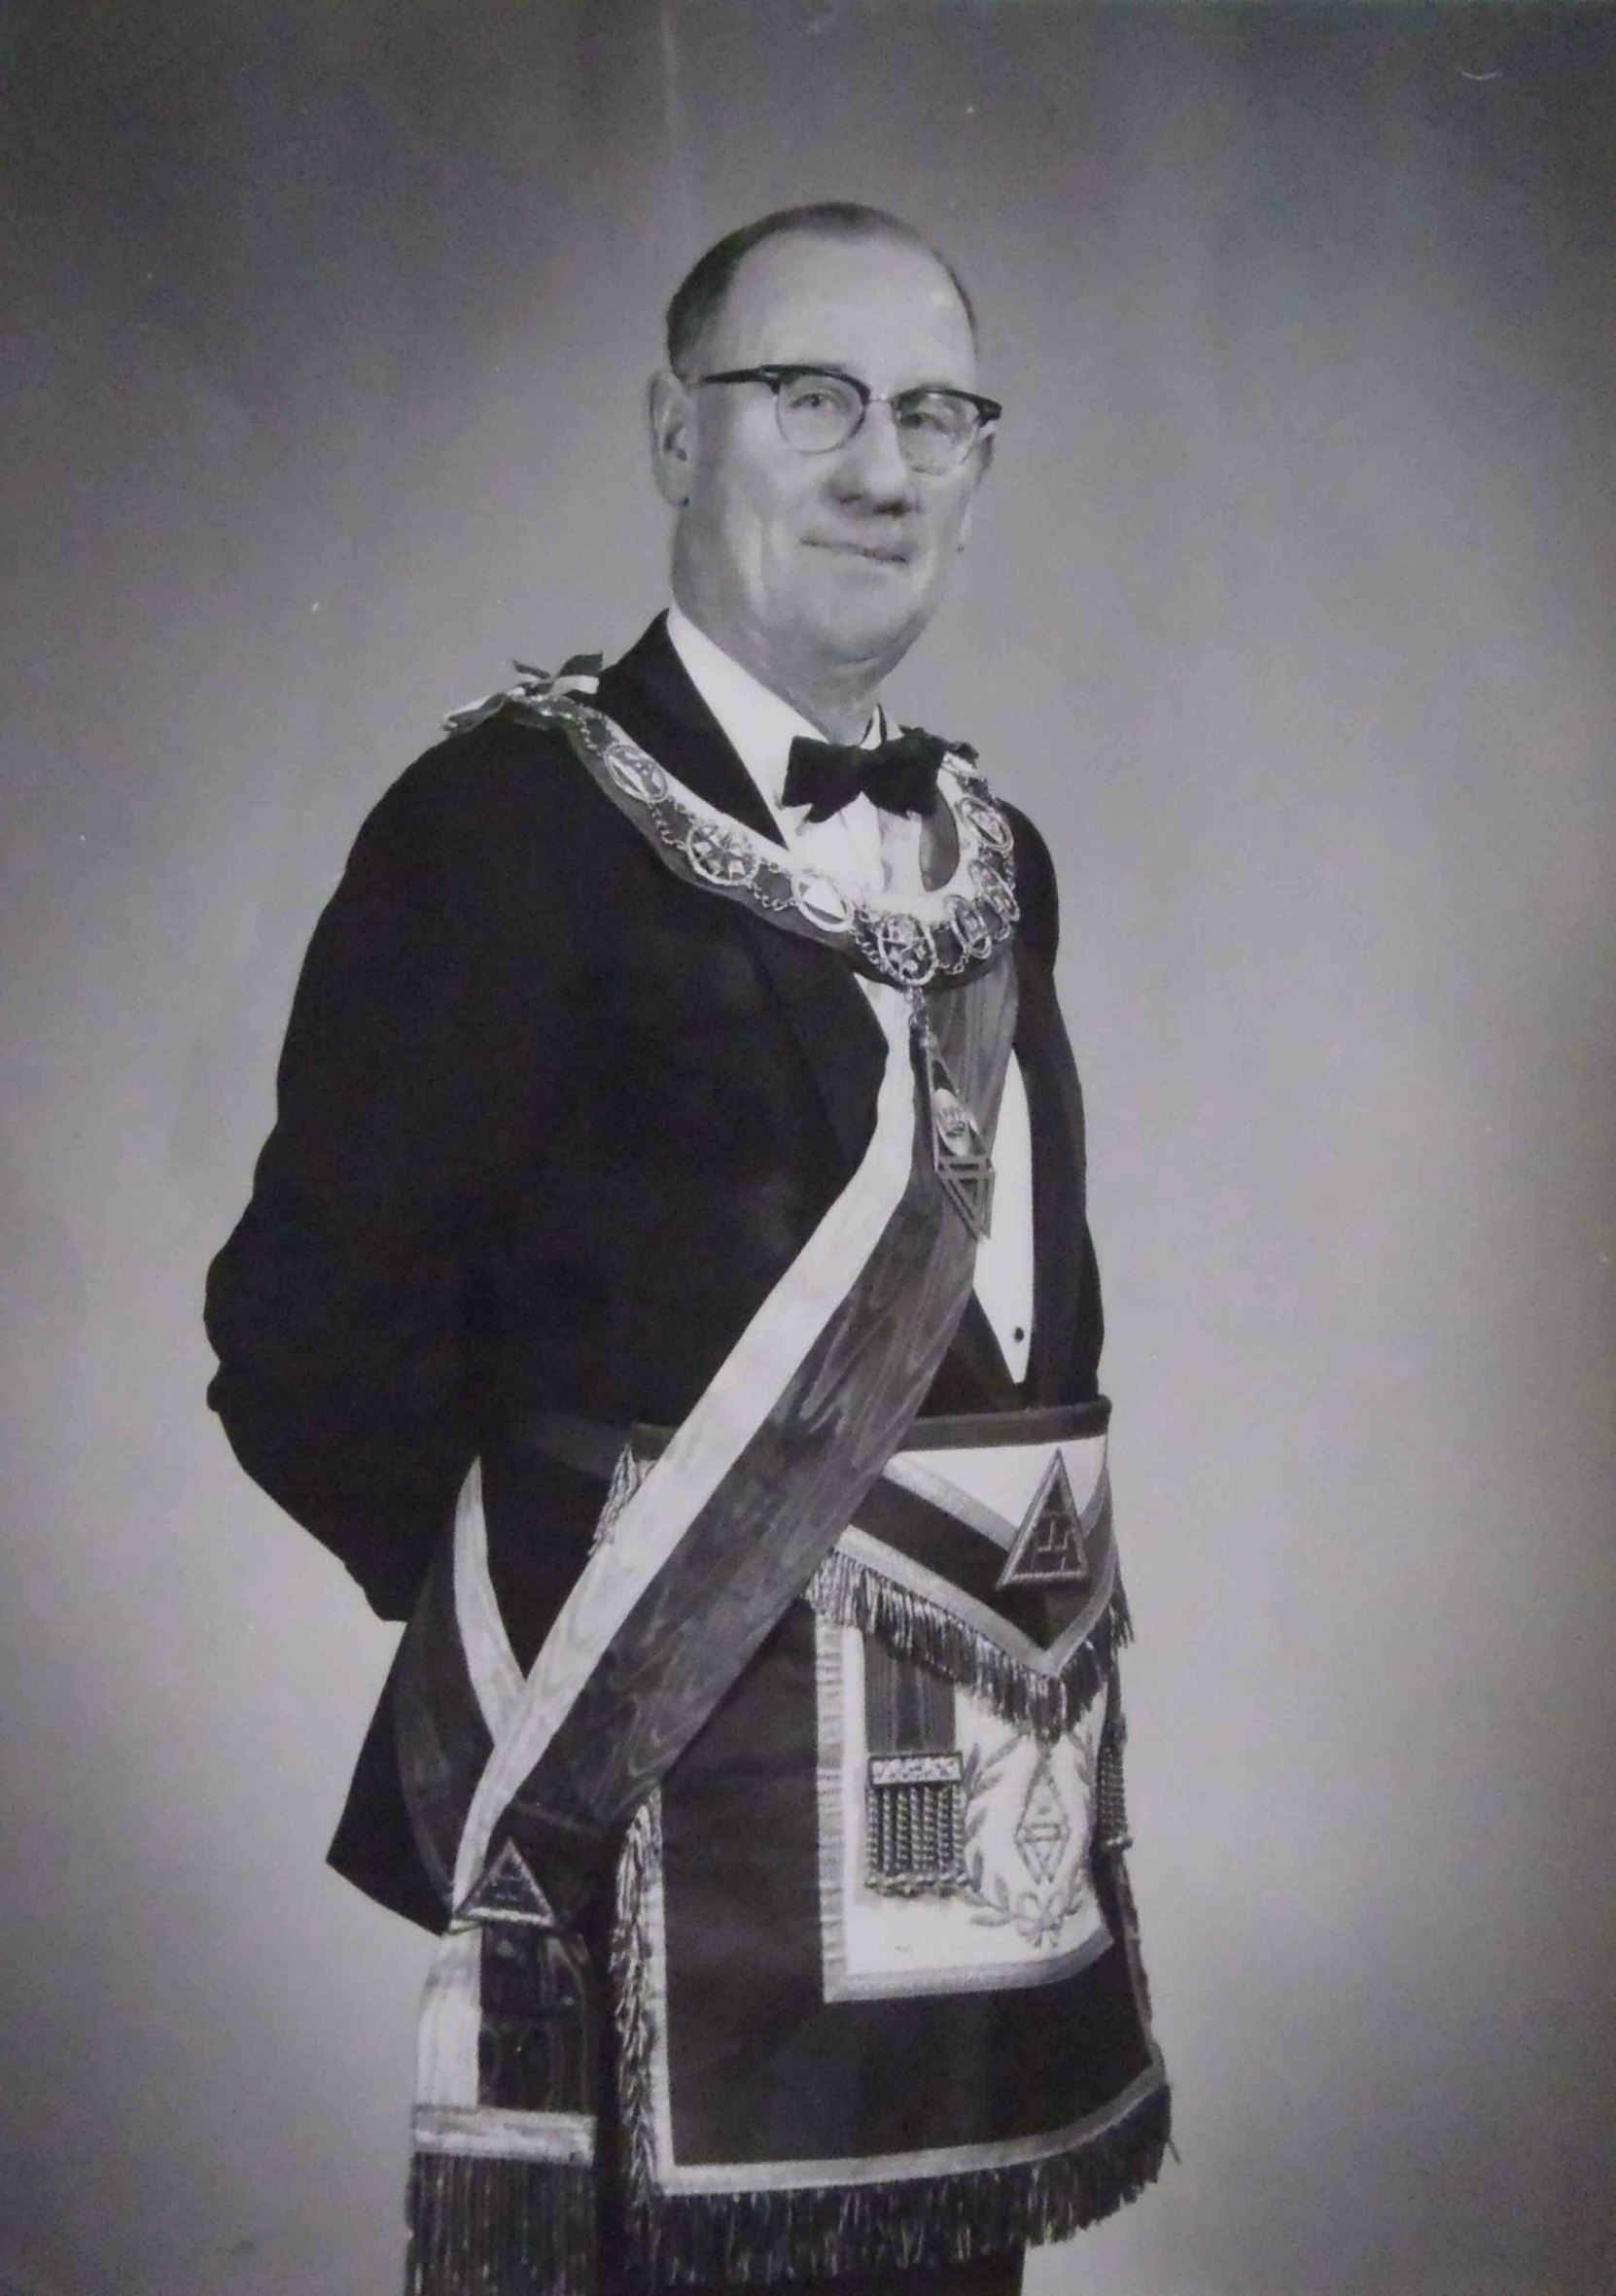 John Stanley Dyke, 1st Principal of Tzouhalem Chapter, No.26 in 1949; Worshipful Master of Temple Lodge, No.33 in 1950